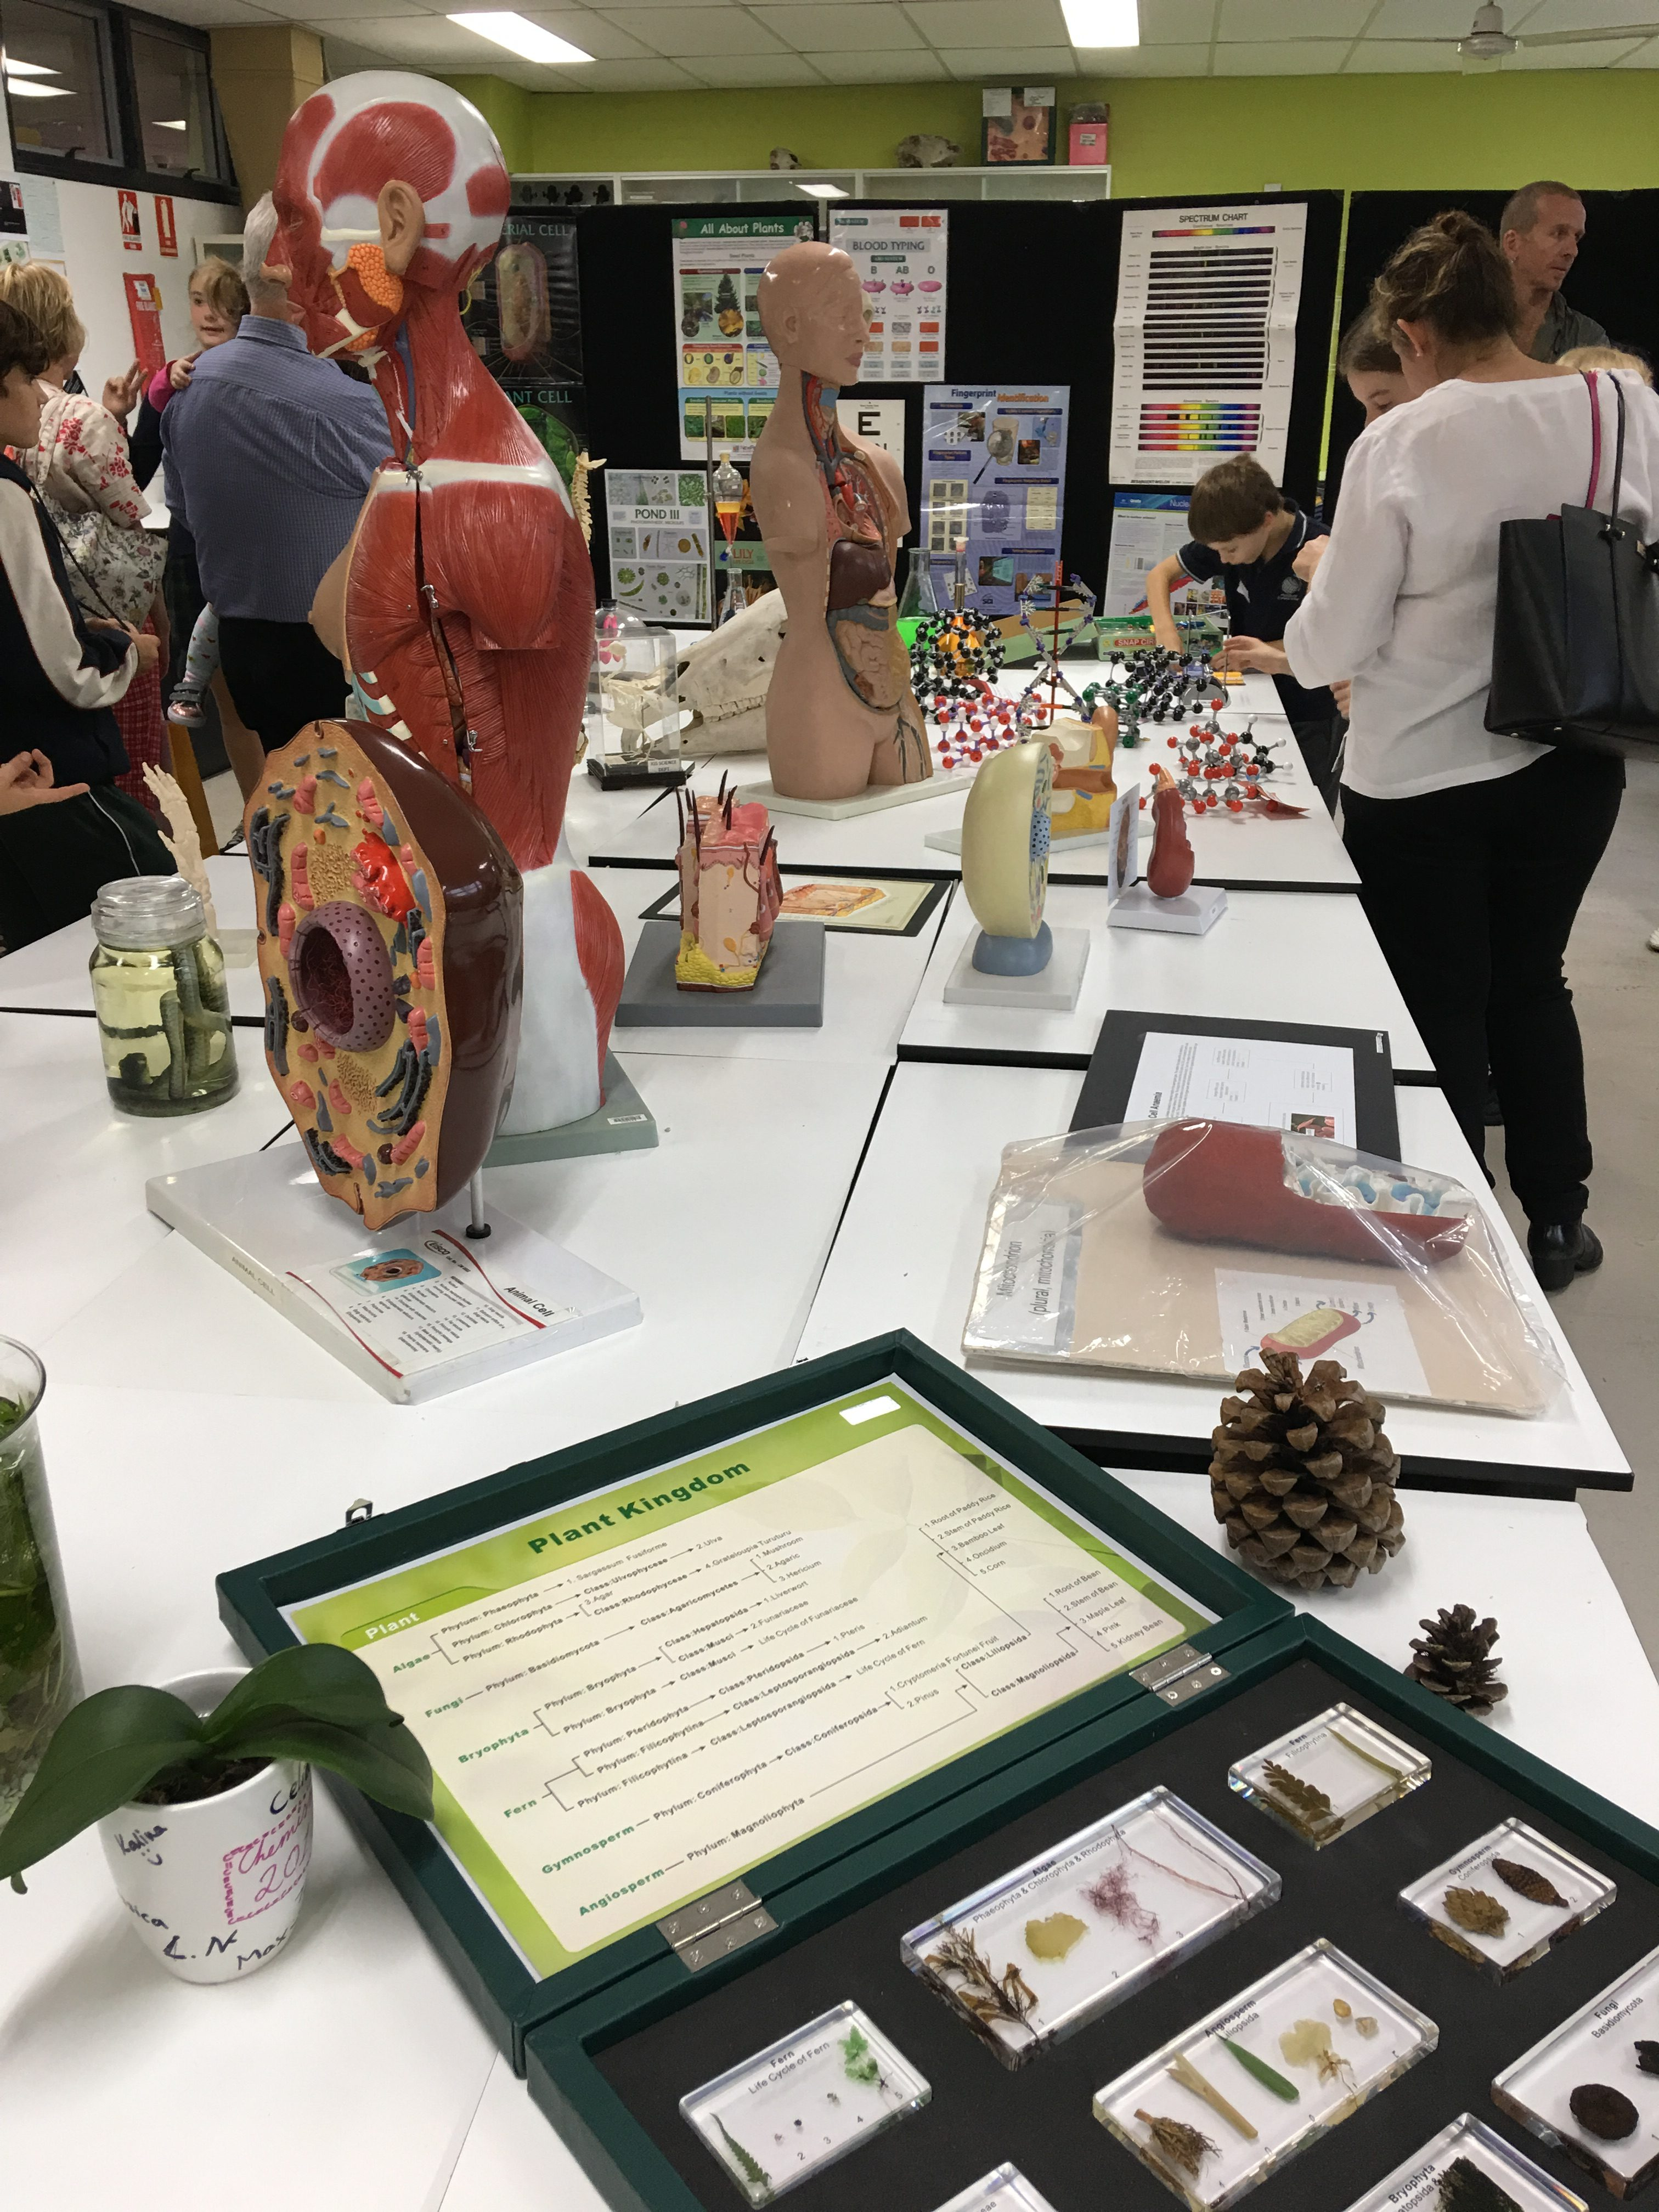 IGS STEAM and Science on show